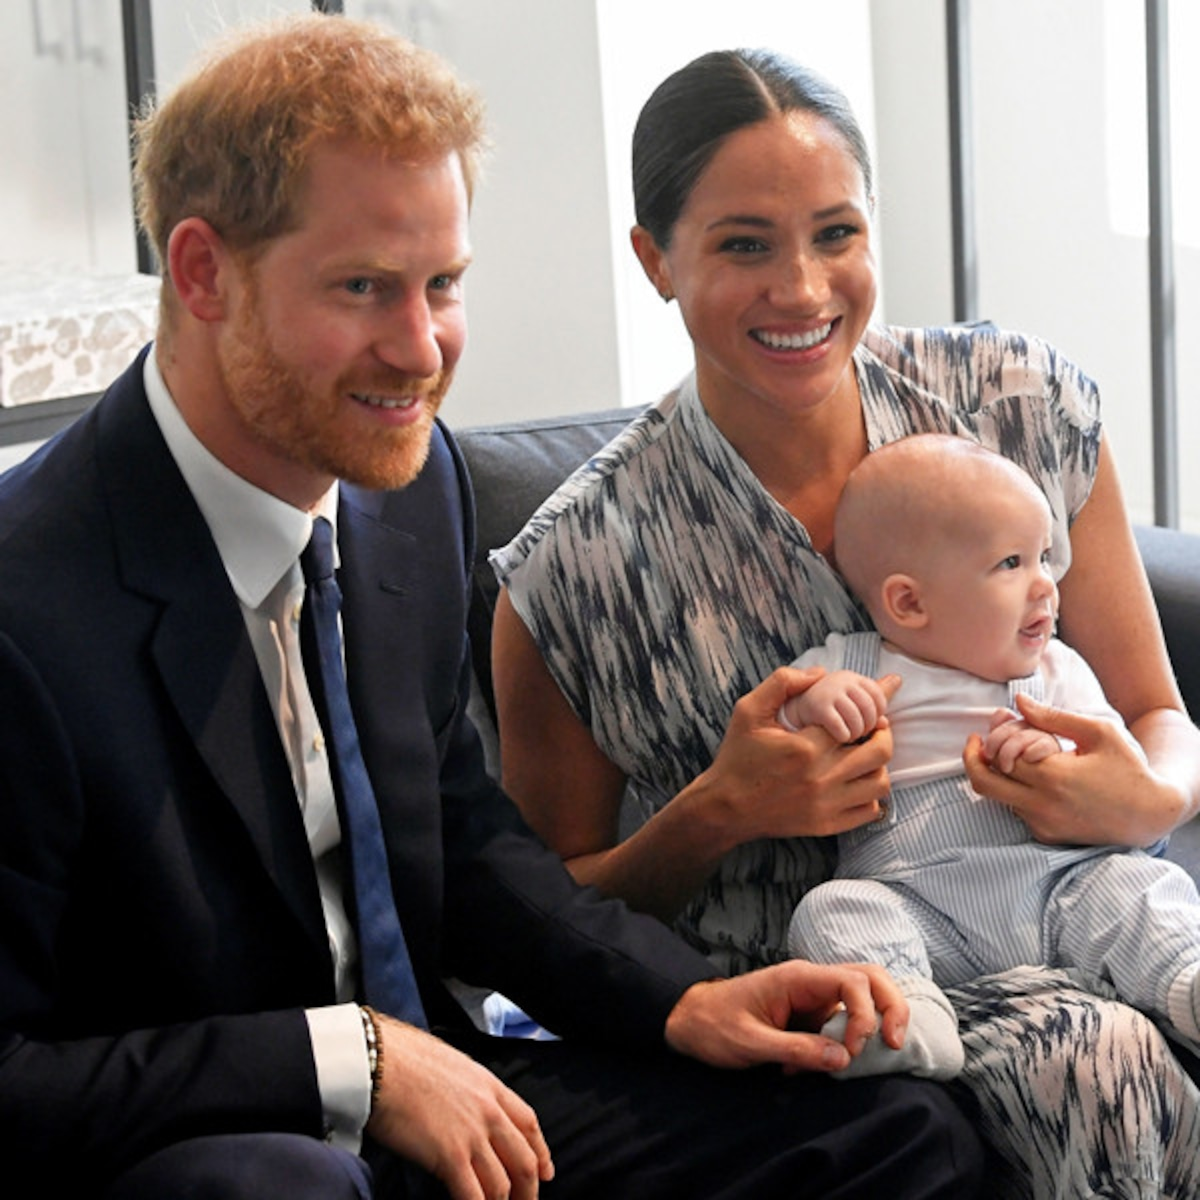 prince harry talks possibility of moving to africa with family e online prince harry talks possibility of